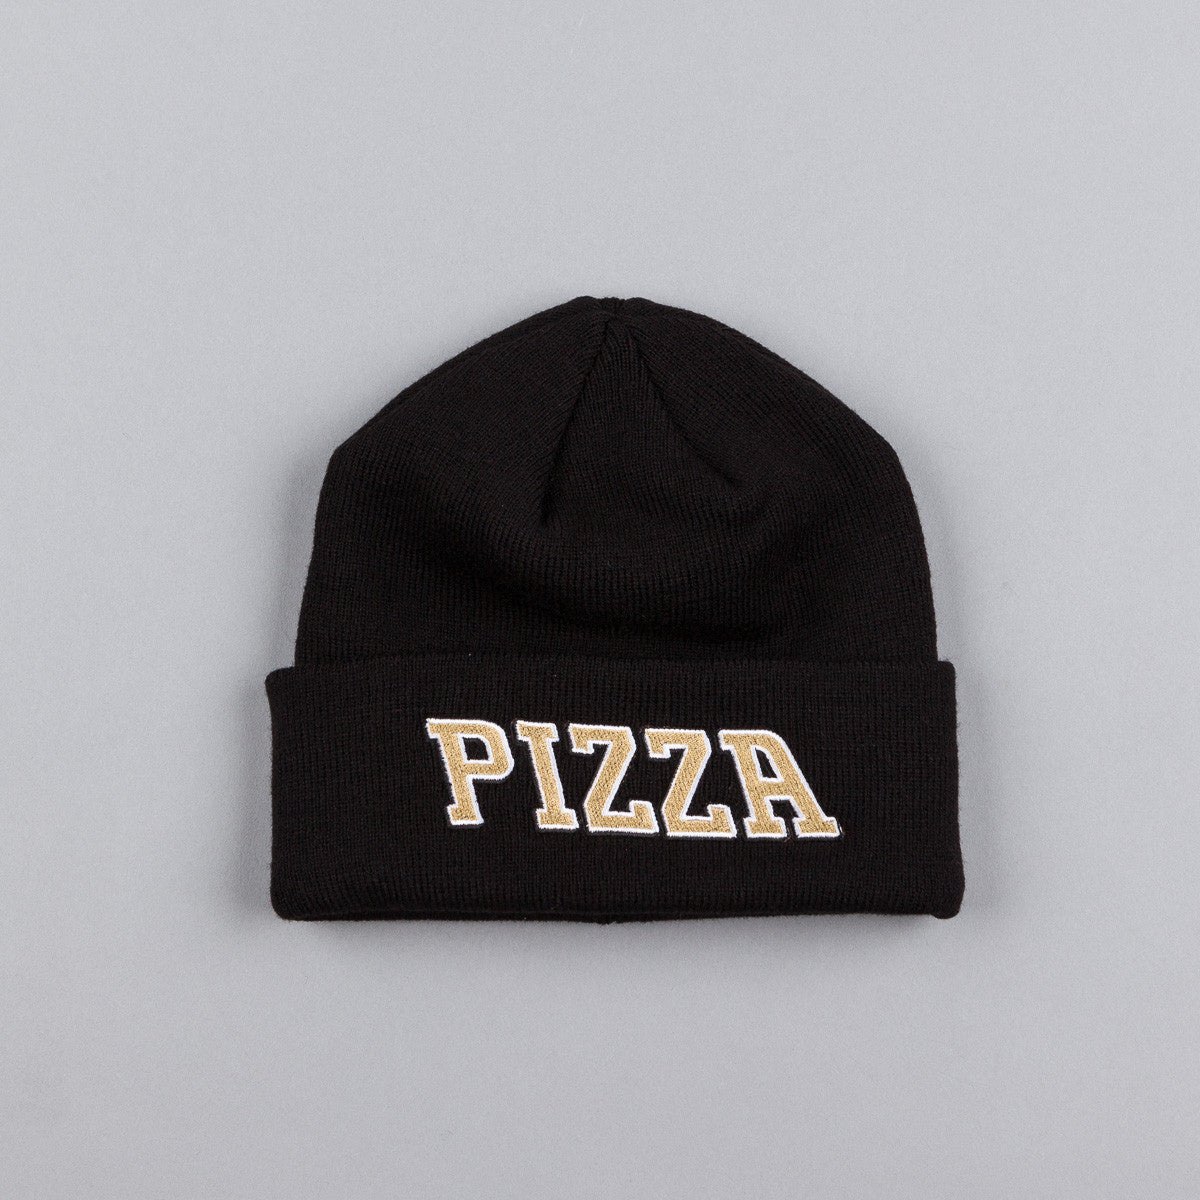 Pizza Skateboards Pizla Beanie